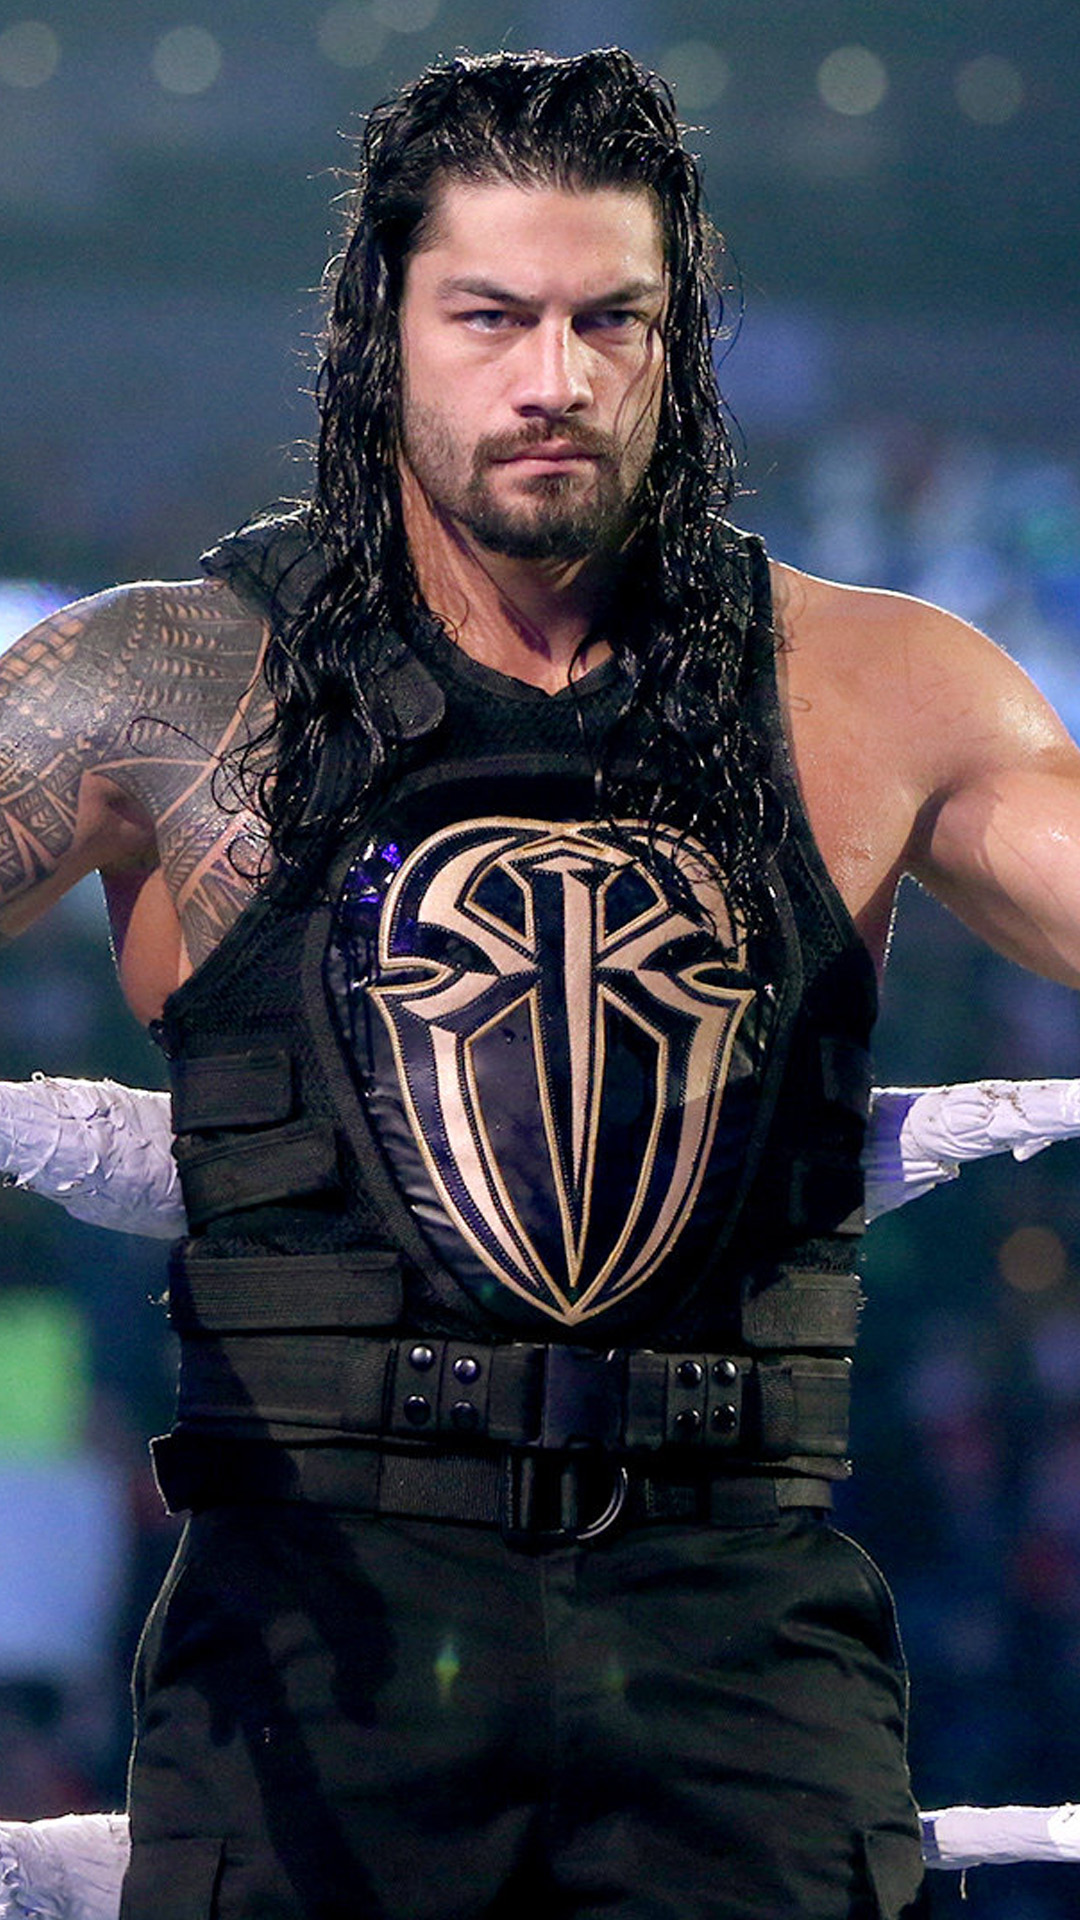 Roman Reigns Wallpaper for Mobile Images and Pictures 1080x1920